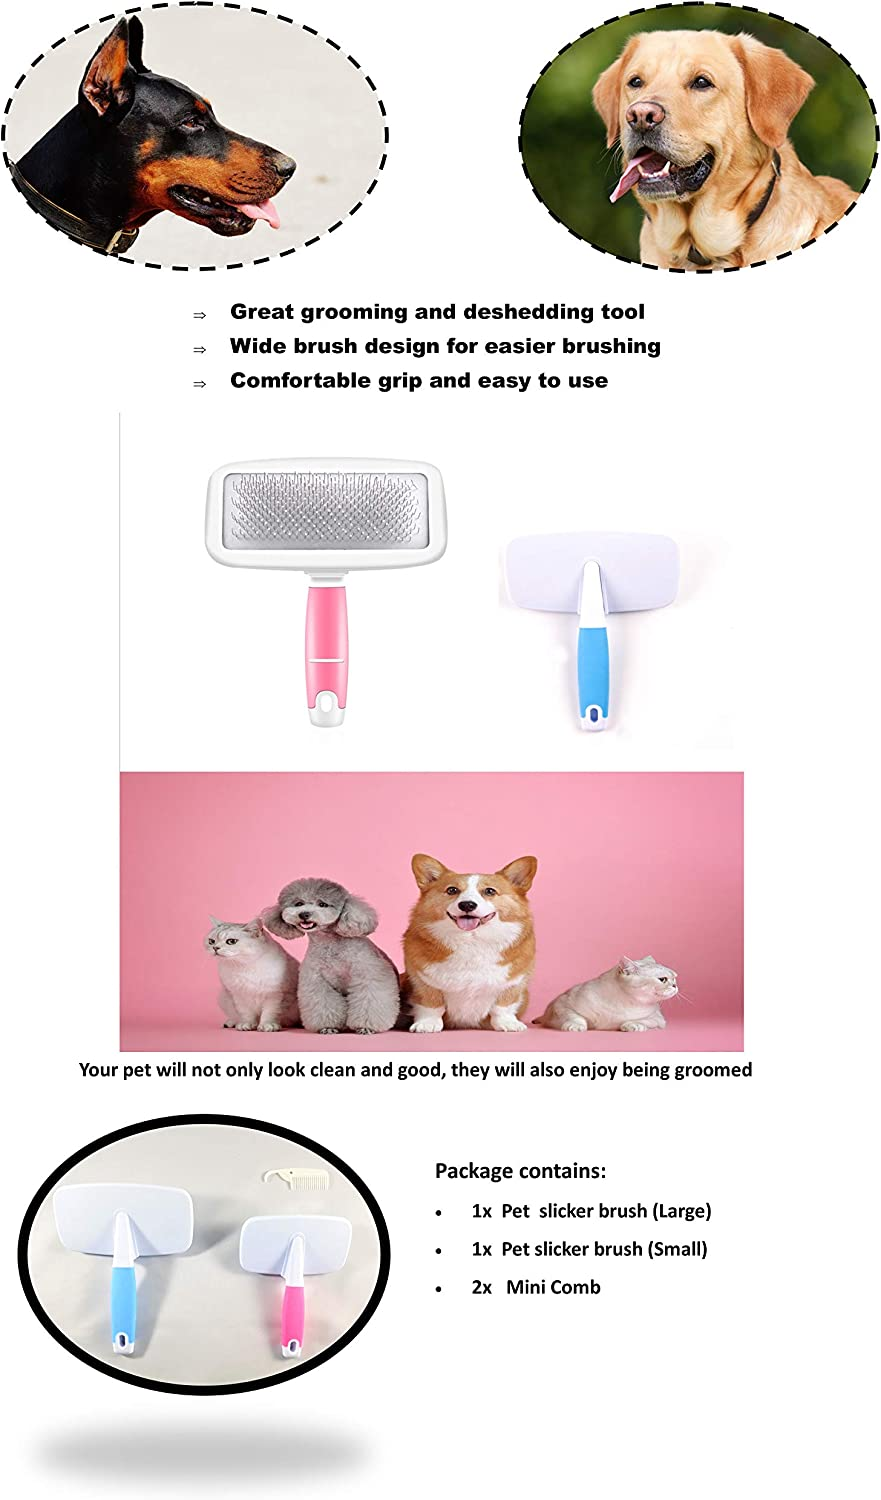 Knots A pair of Dog /& Cat Grooming brush//comb and Loose Hair from Pets for Dog Gently Remove Mats Cats and Pets Great Deshedding Tool and Easy to Use Vines Classic Slicker brush Tangles